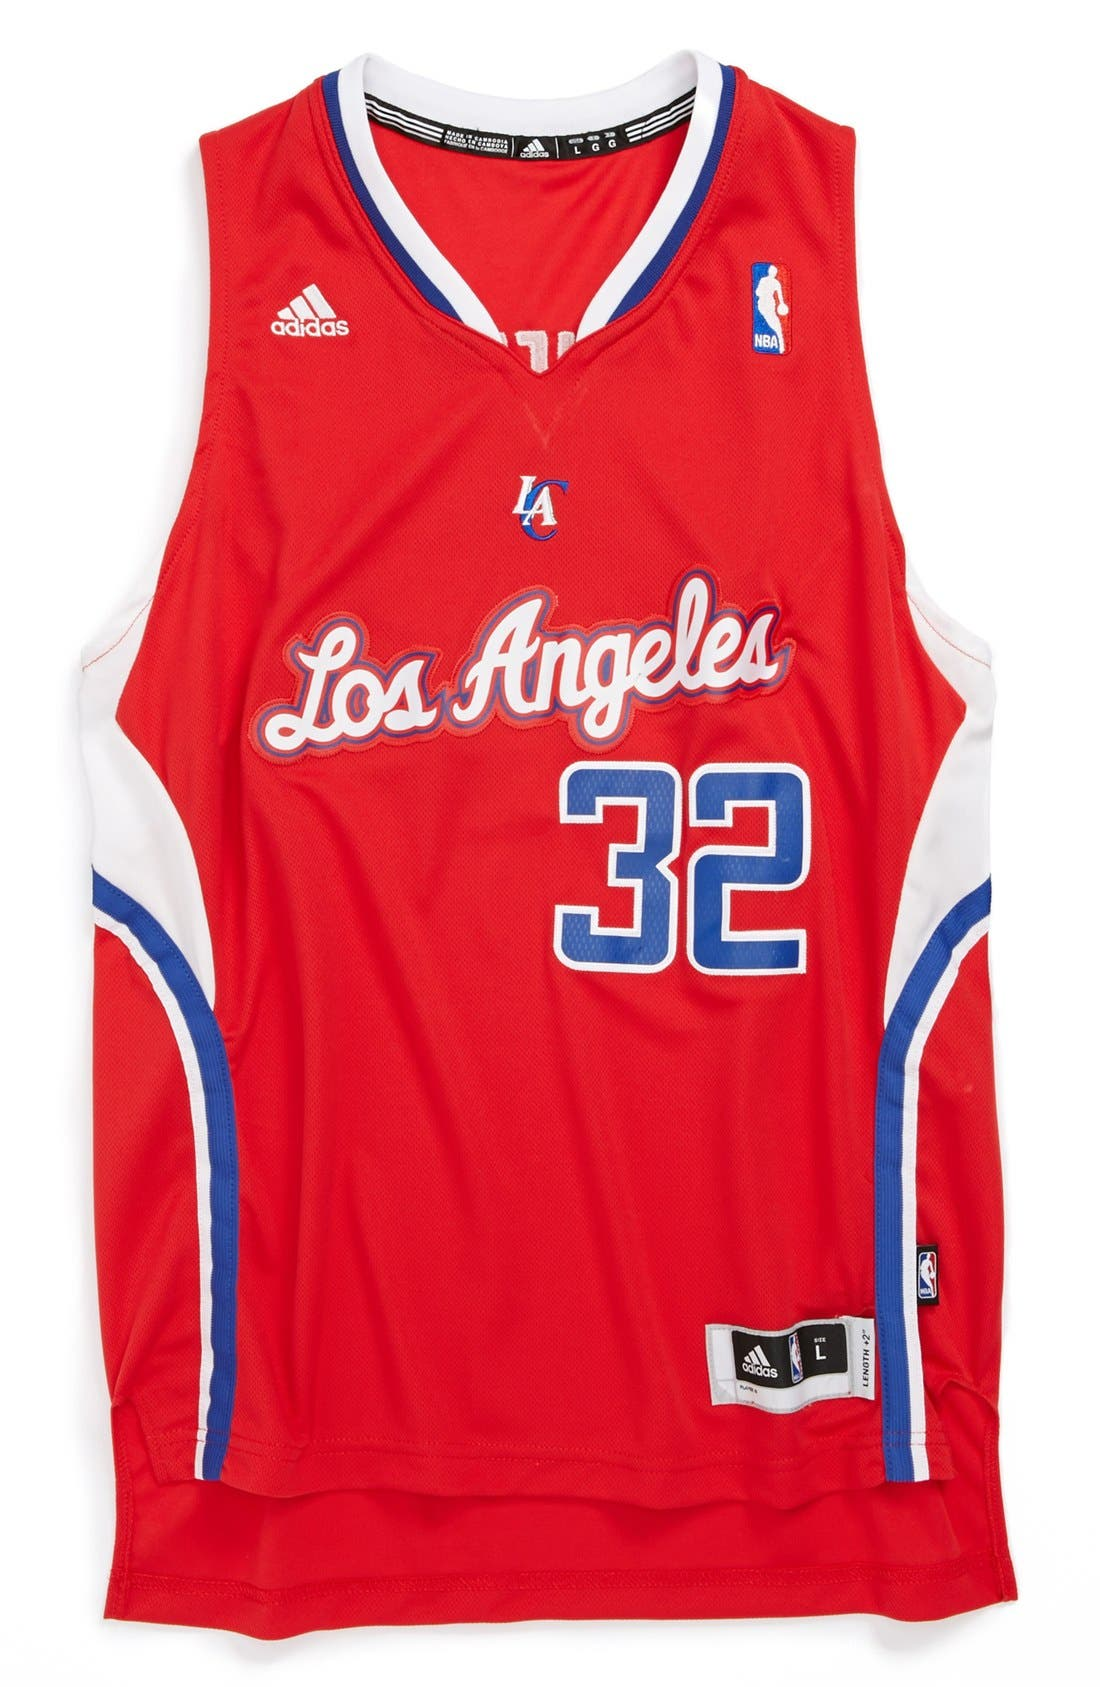 Alternate Image 1 Selected - adidas 'Los Angeles Clippers, Blake Griffin - Swingman Road' Jersey (Big Boys)